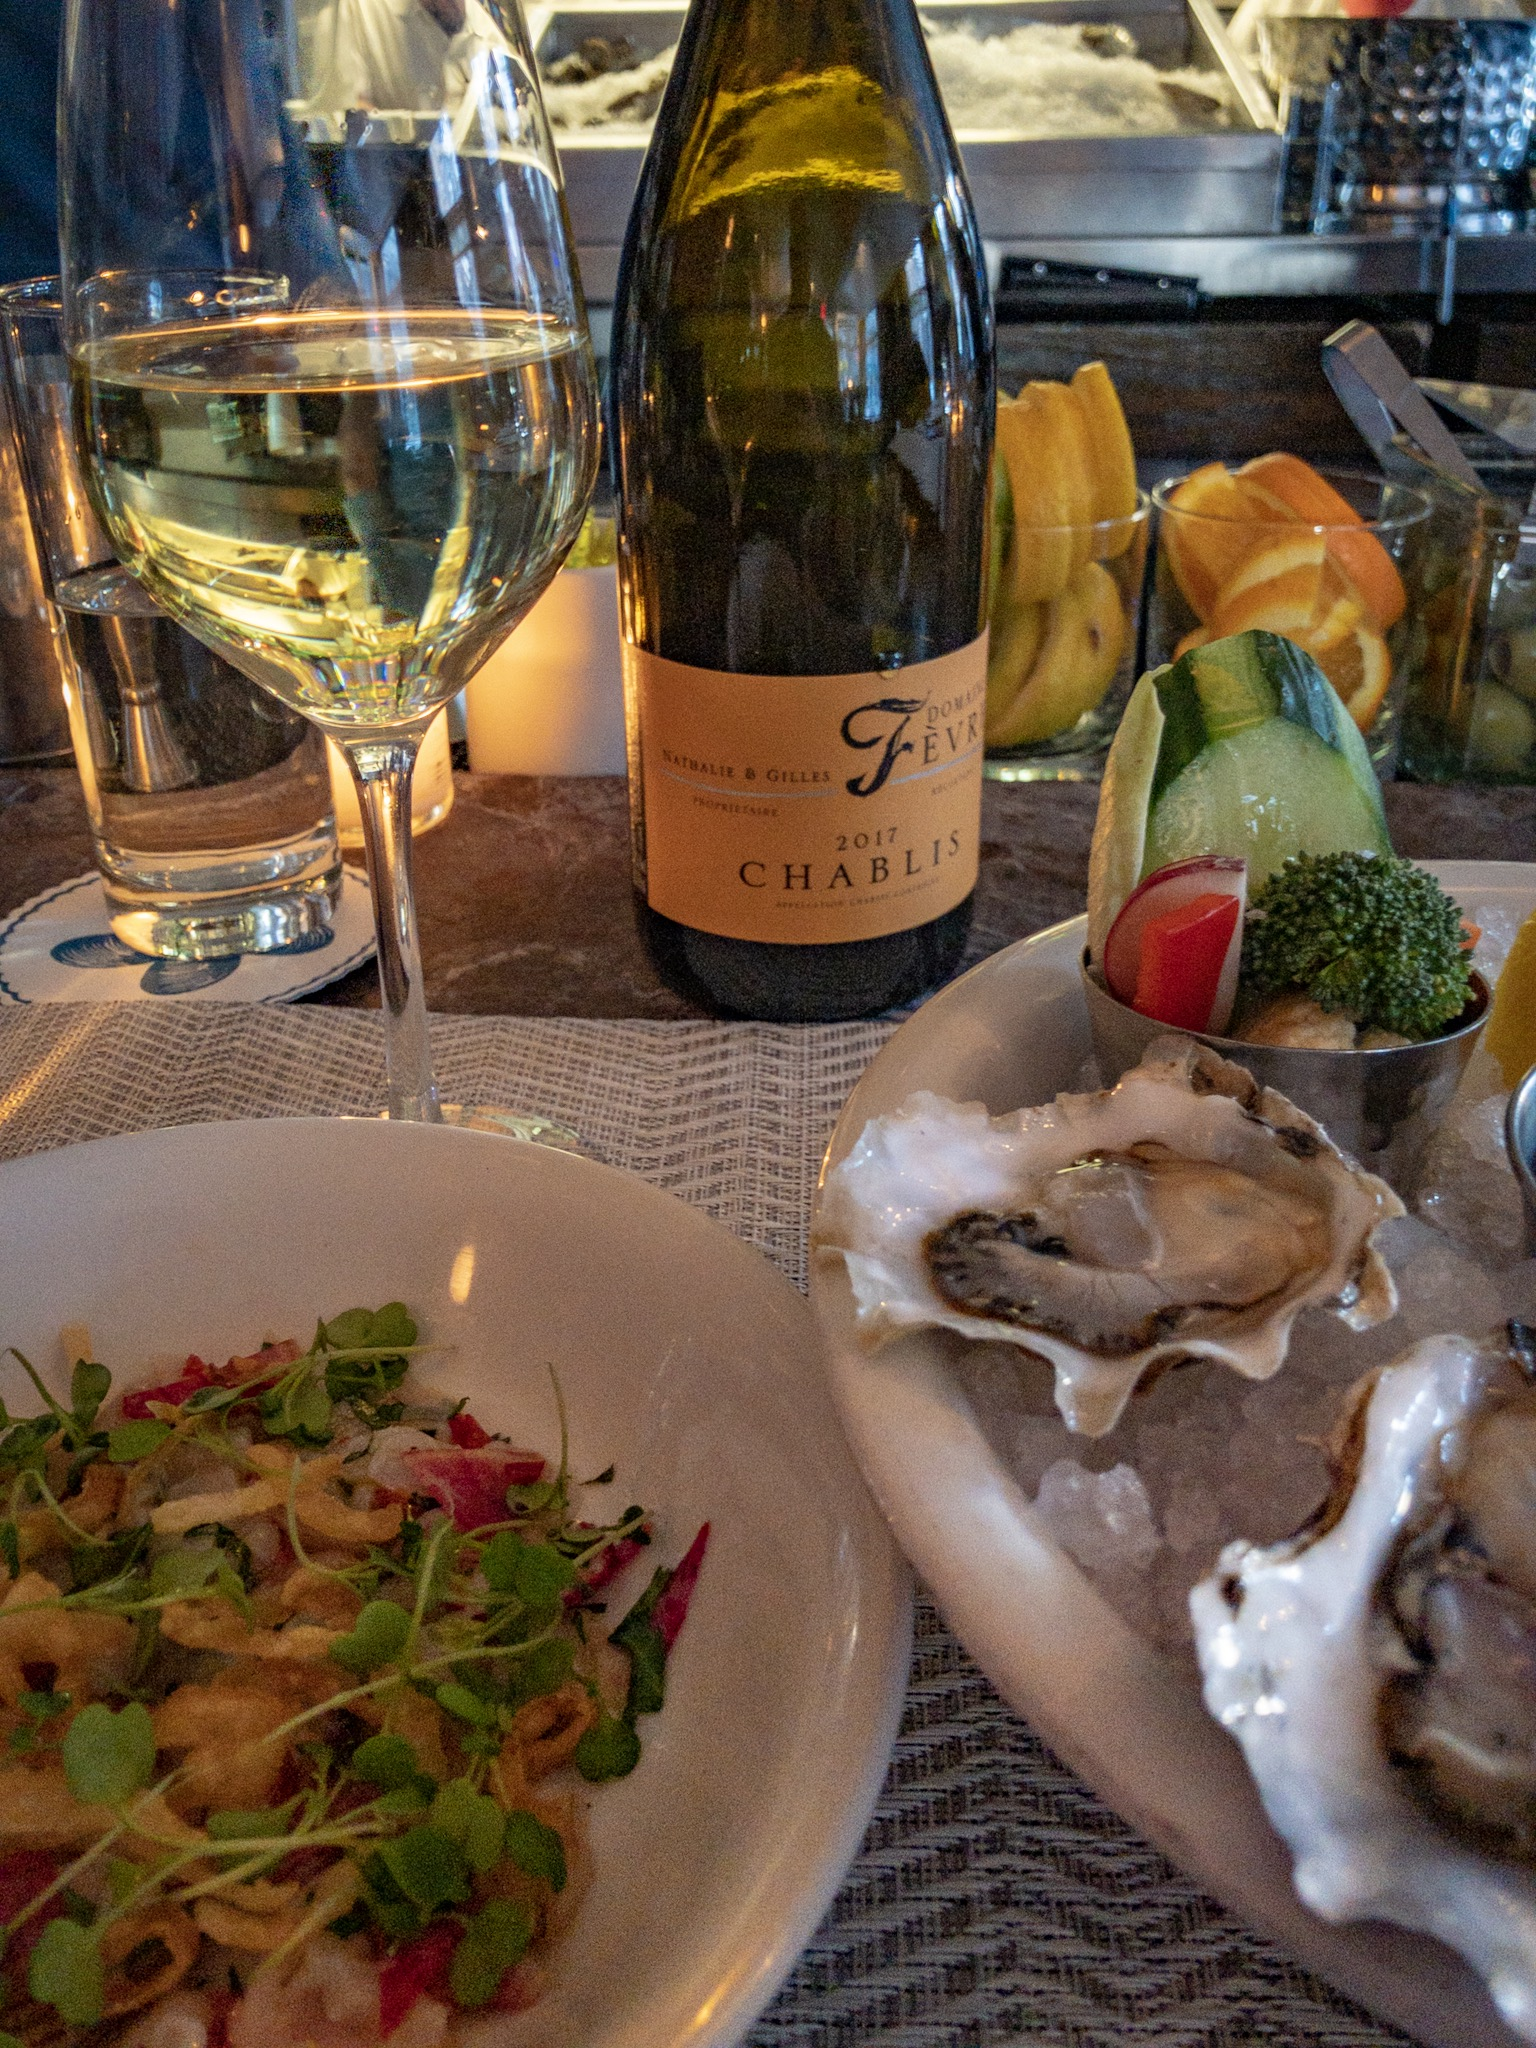 Chablis and Oysters at The Clam (c) Lyn Farmer 2019